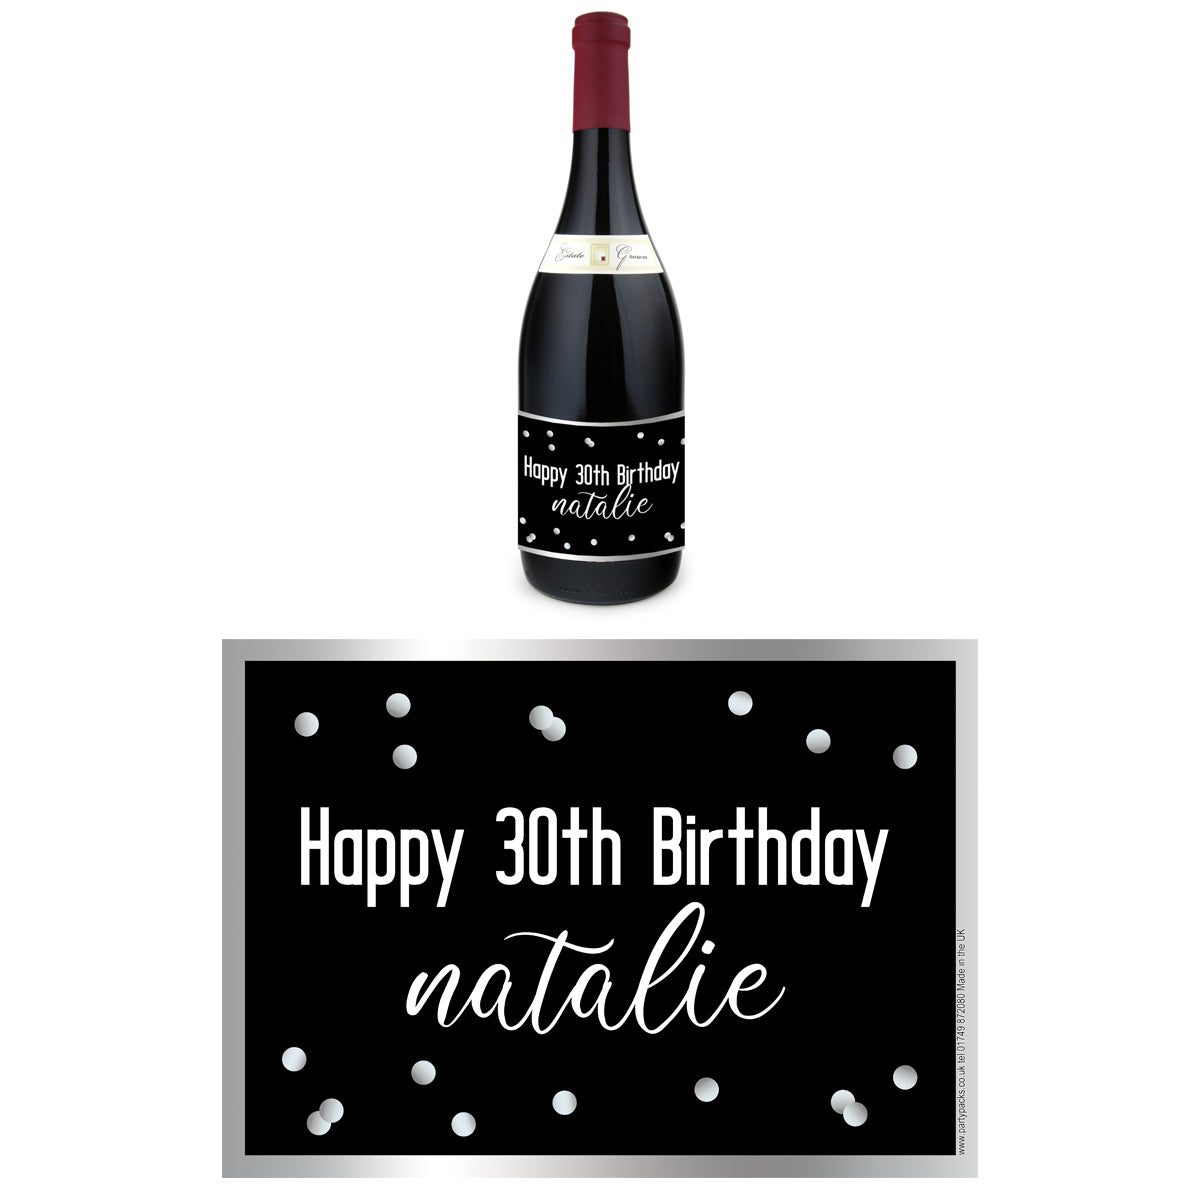 Personalised Wine Bottle Labels - Glitz Black & Silver - Pack of 4